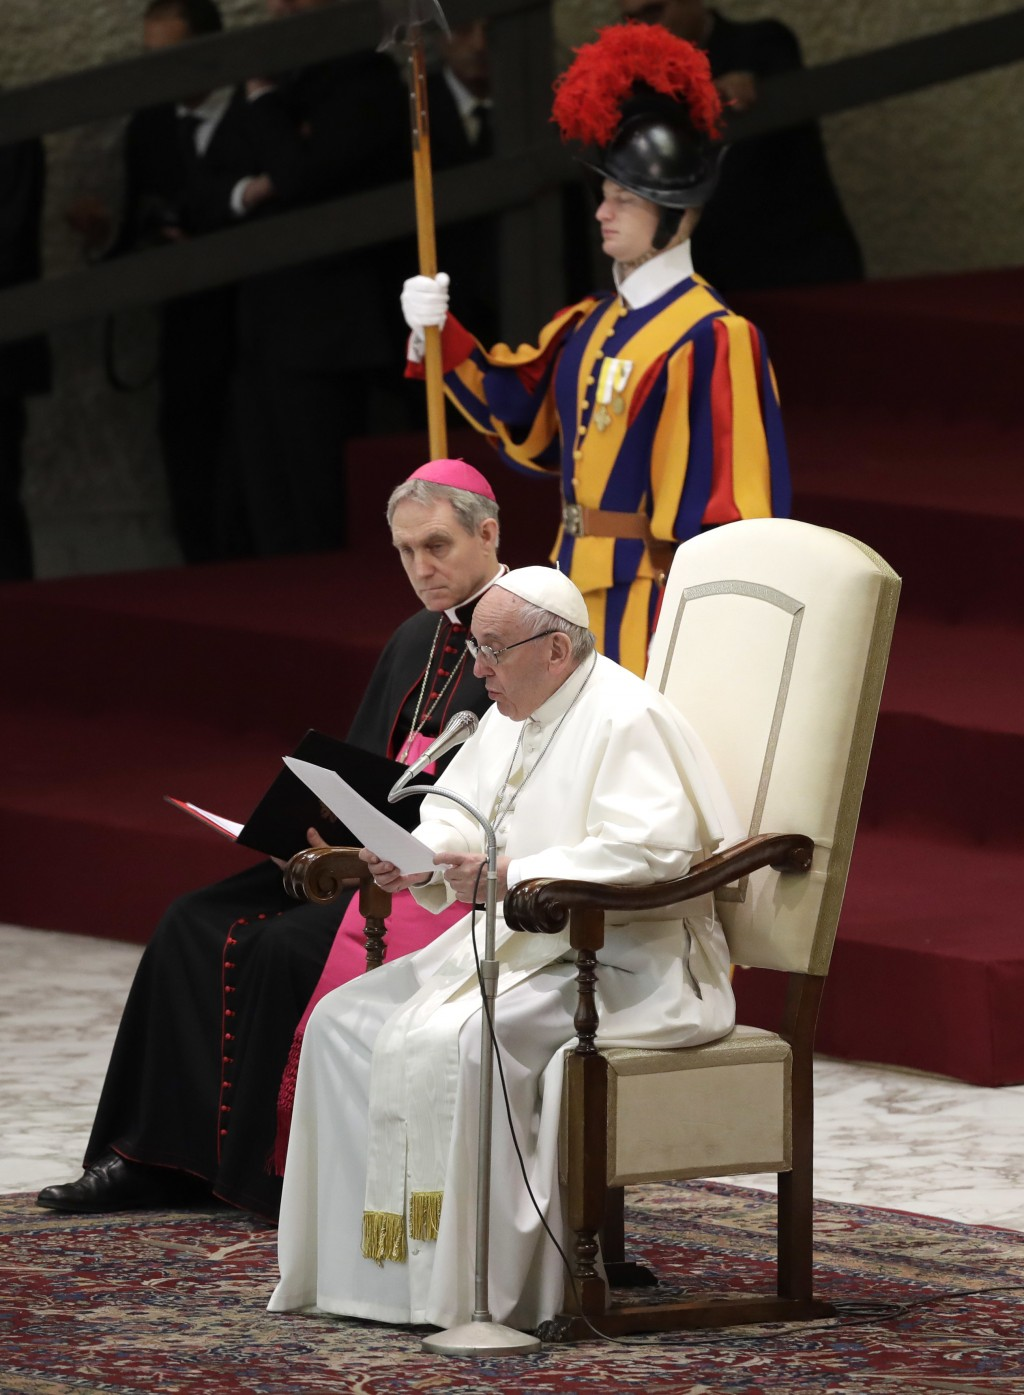 Pope Francis reads a statement during his weekly general audience in the Paul VI Hall at the Vatican, Wednesday, Dec. 6, 2017. Pope Francis called Wed